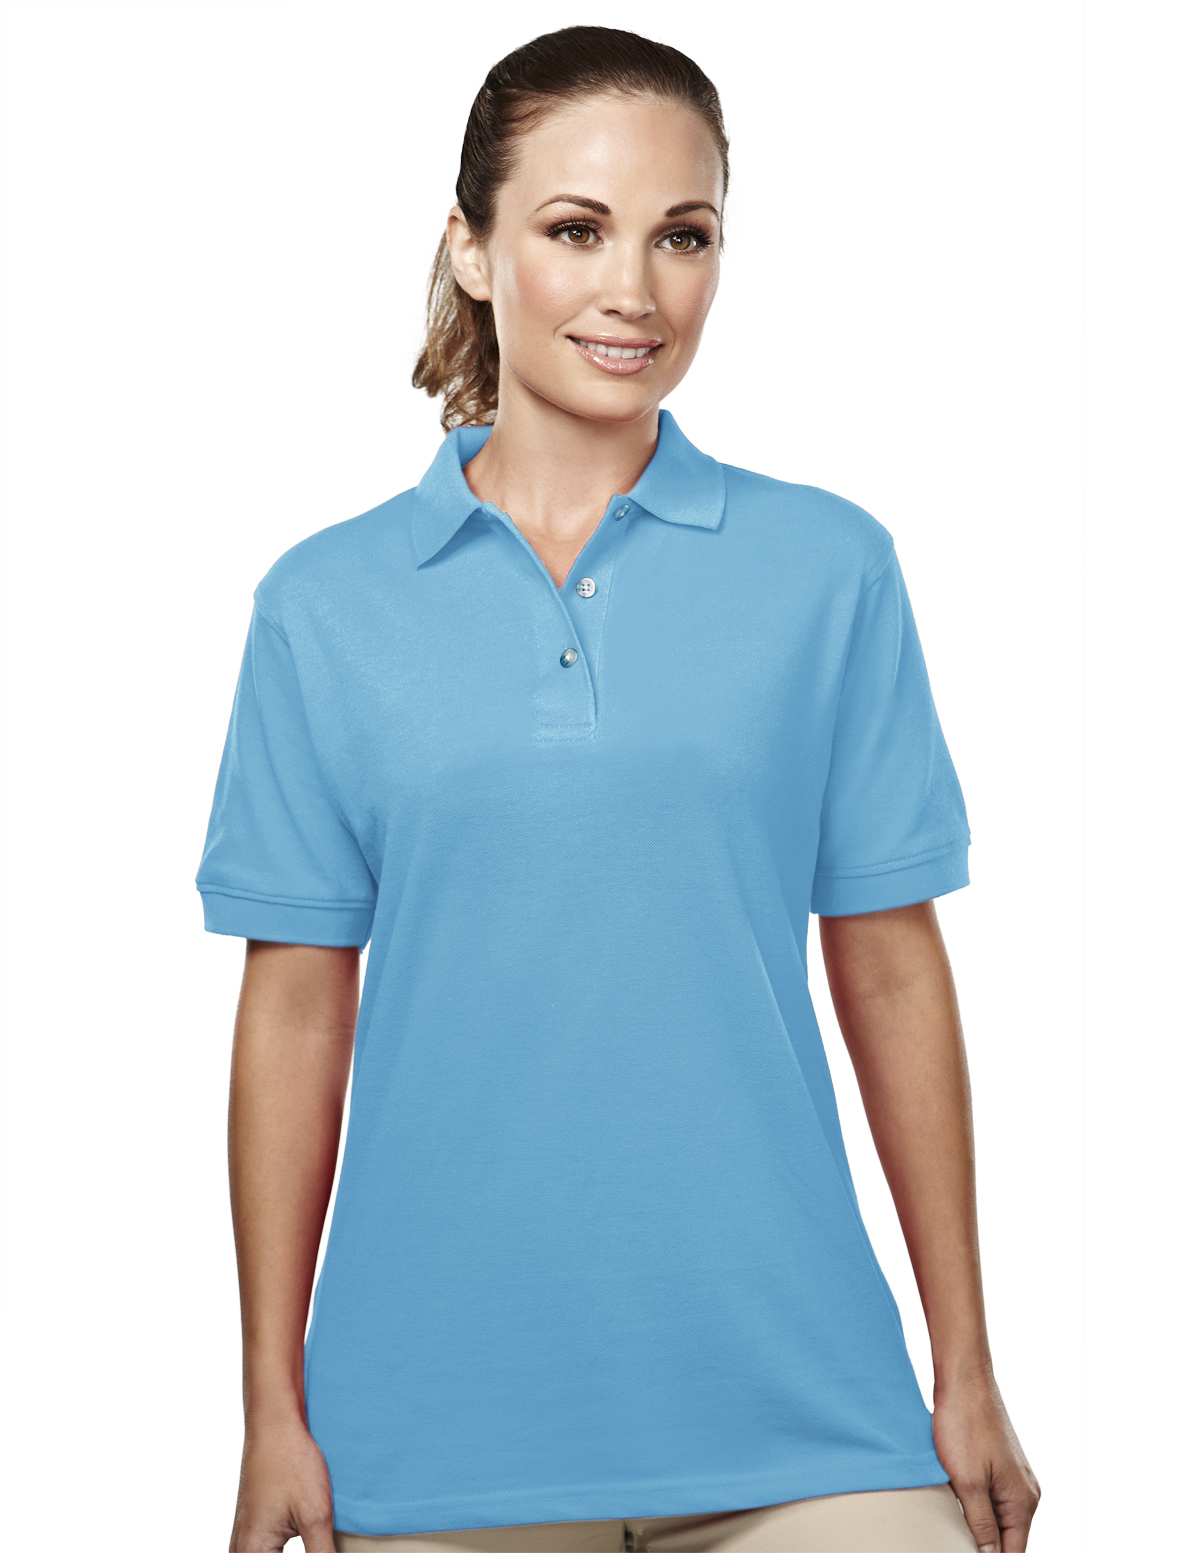 09291f04 Buy Accent-Womens 60/40 Easy Care Pique Golf Shirt - Tri-Mountain ...